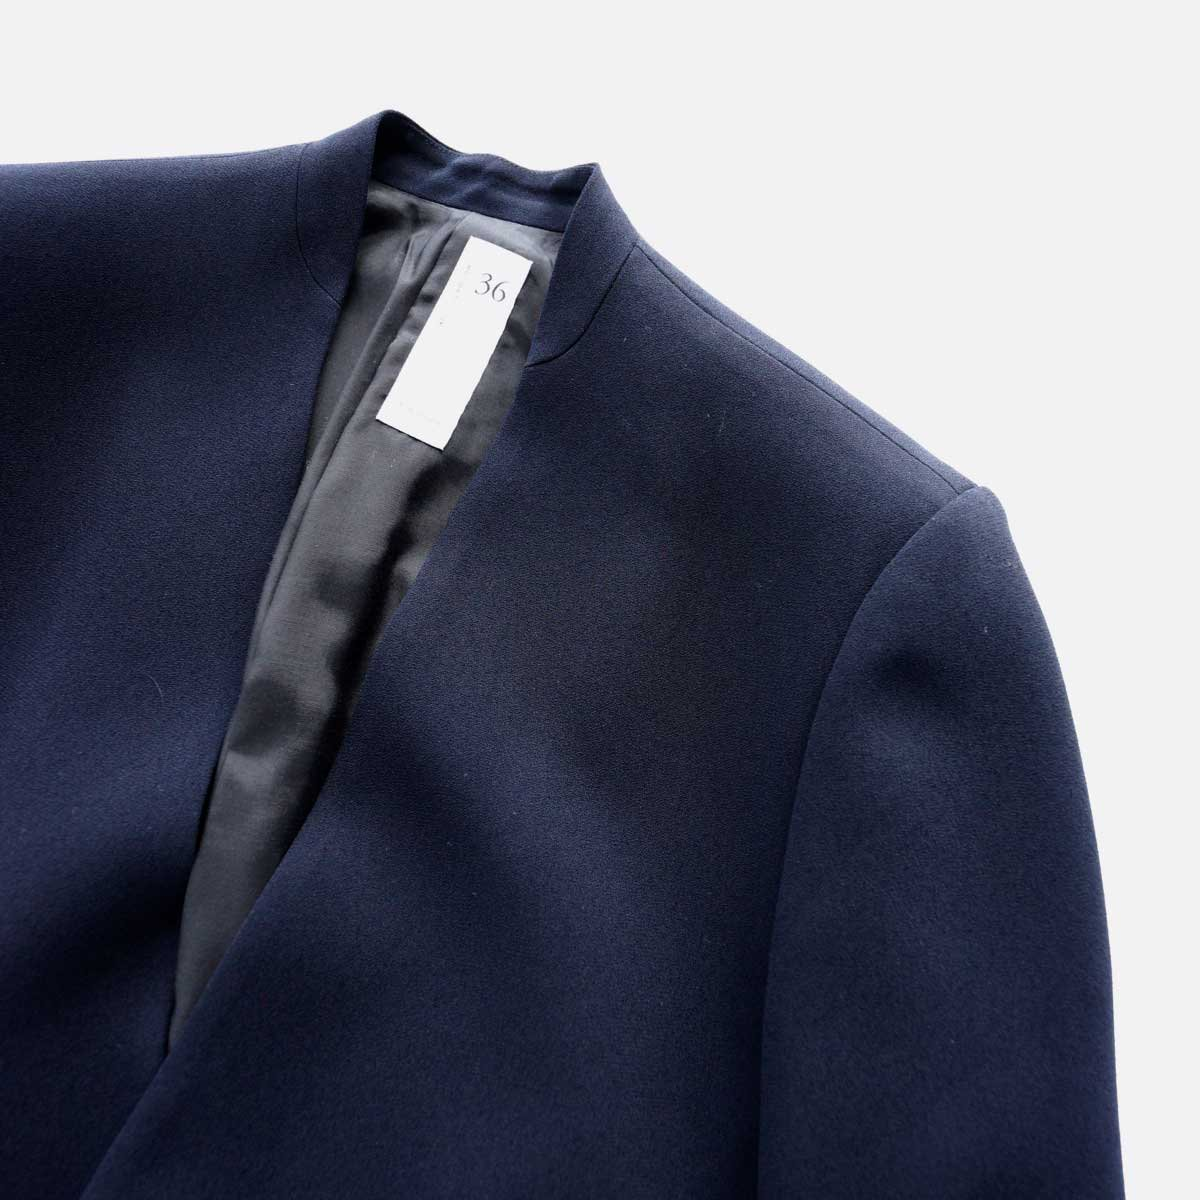 NO CONTROL AIR ACETATE & POLYESTER DOUBLE CROTH NO COLOR JACKET (NAVY)3